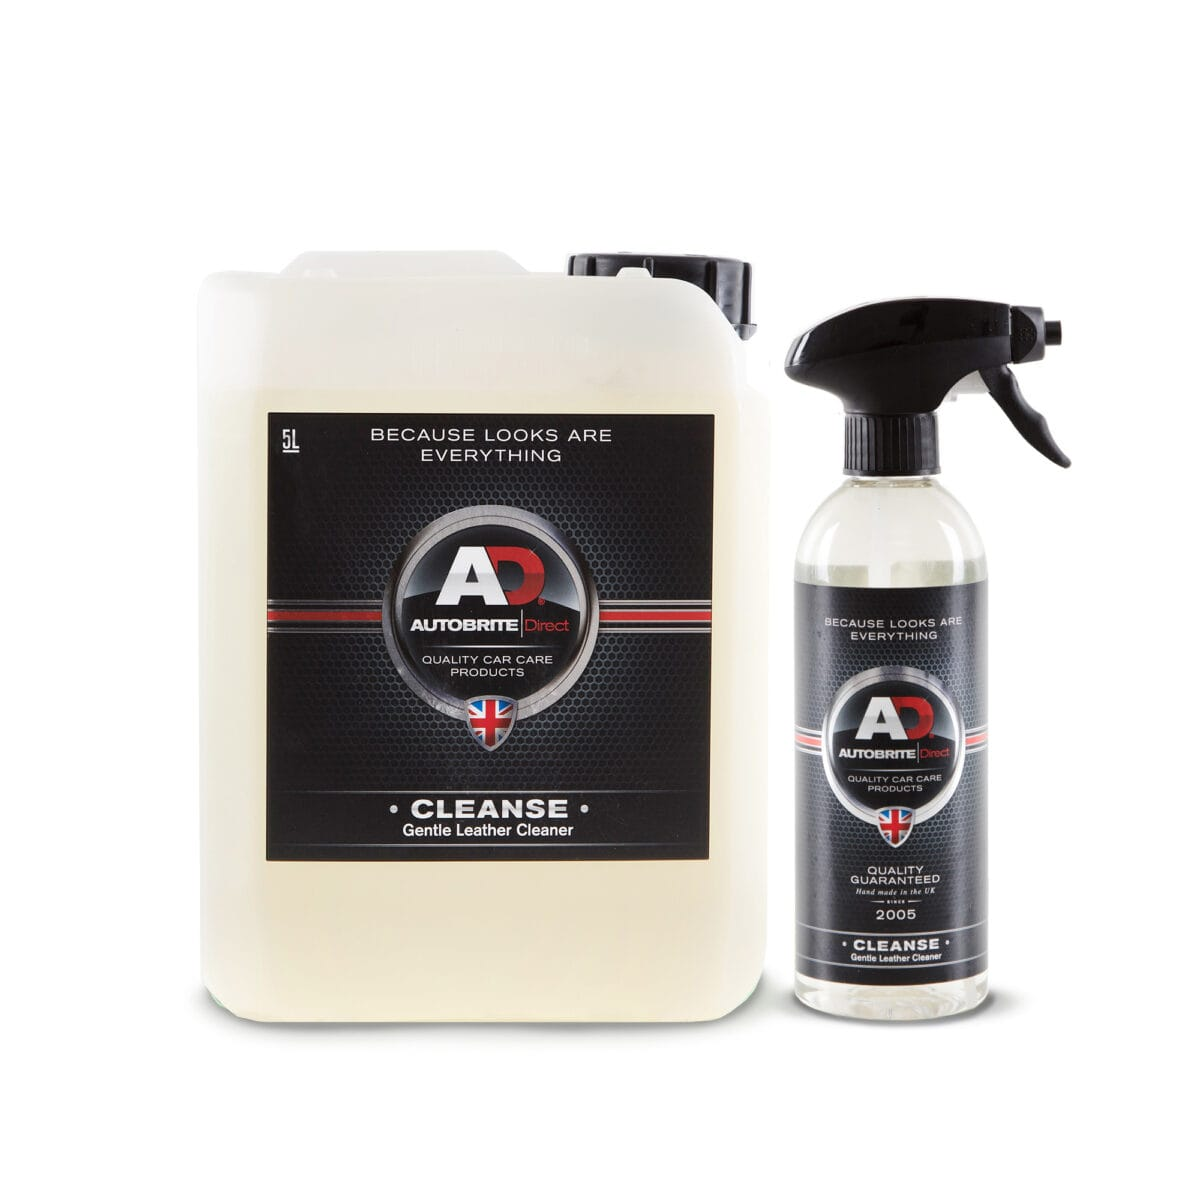 Cleanse gentle leather cleaner